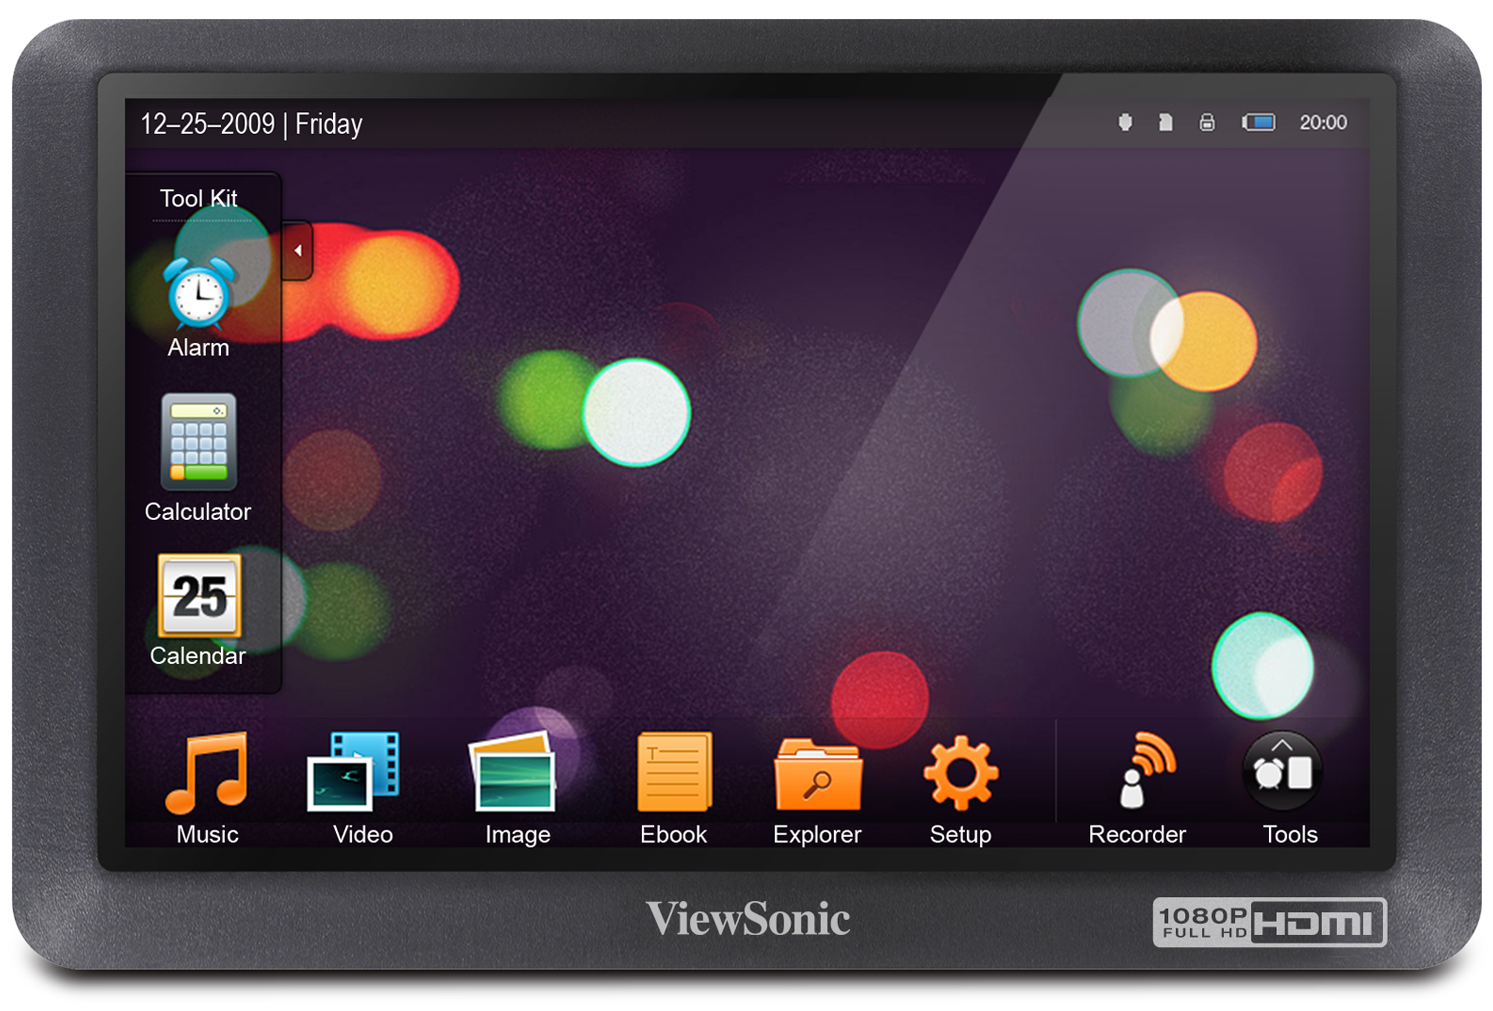 Photo of the Viewsonic MovieBook VPD550T portable video player.